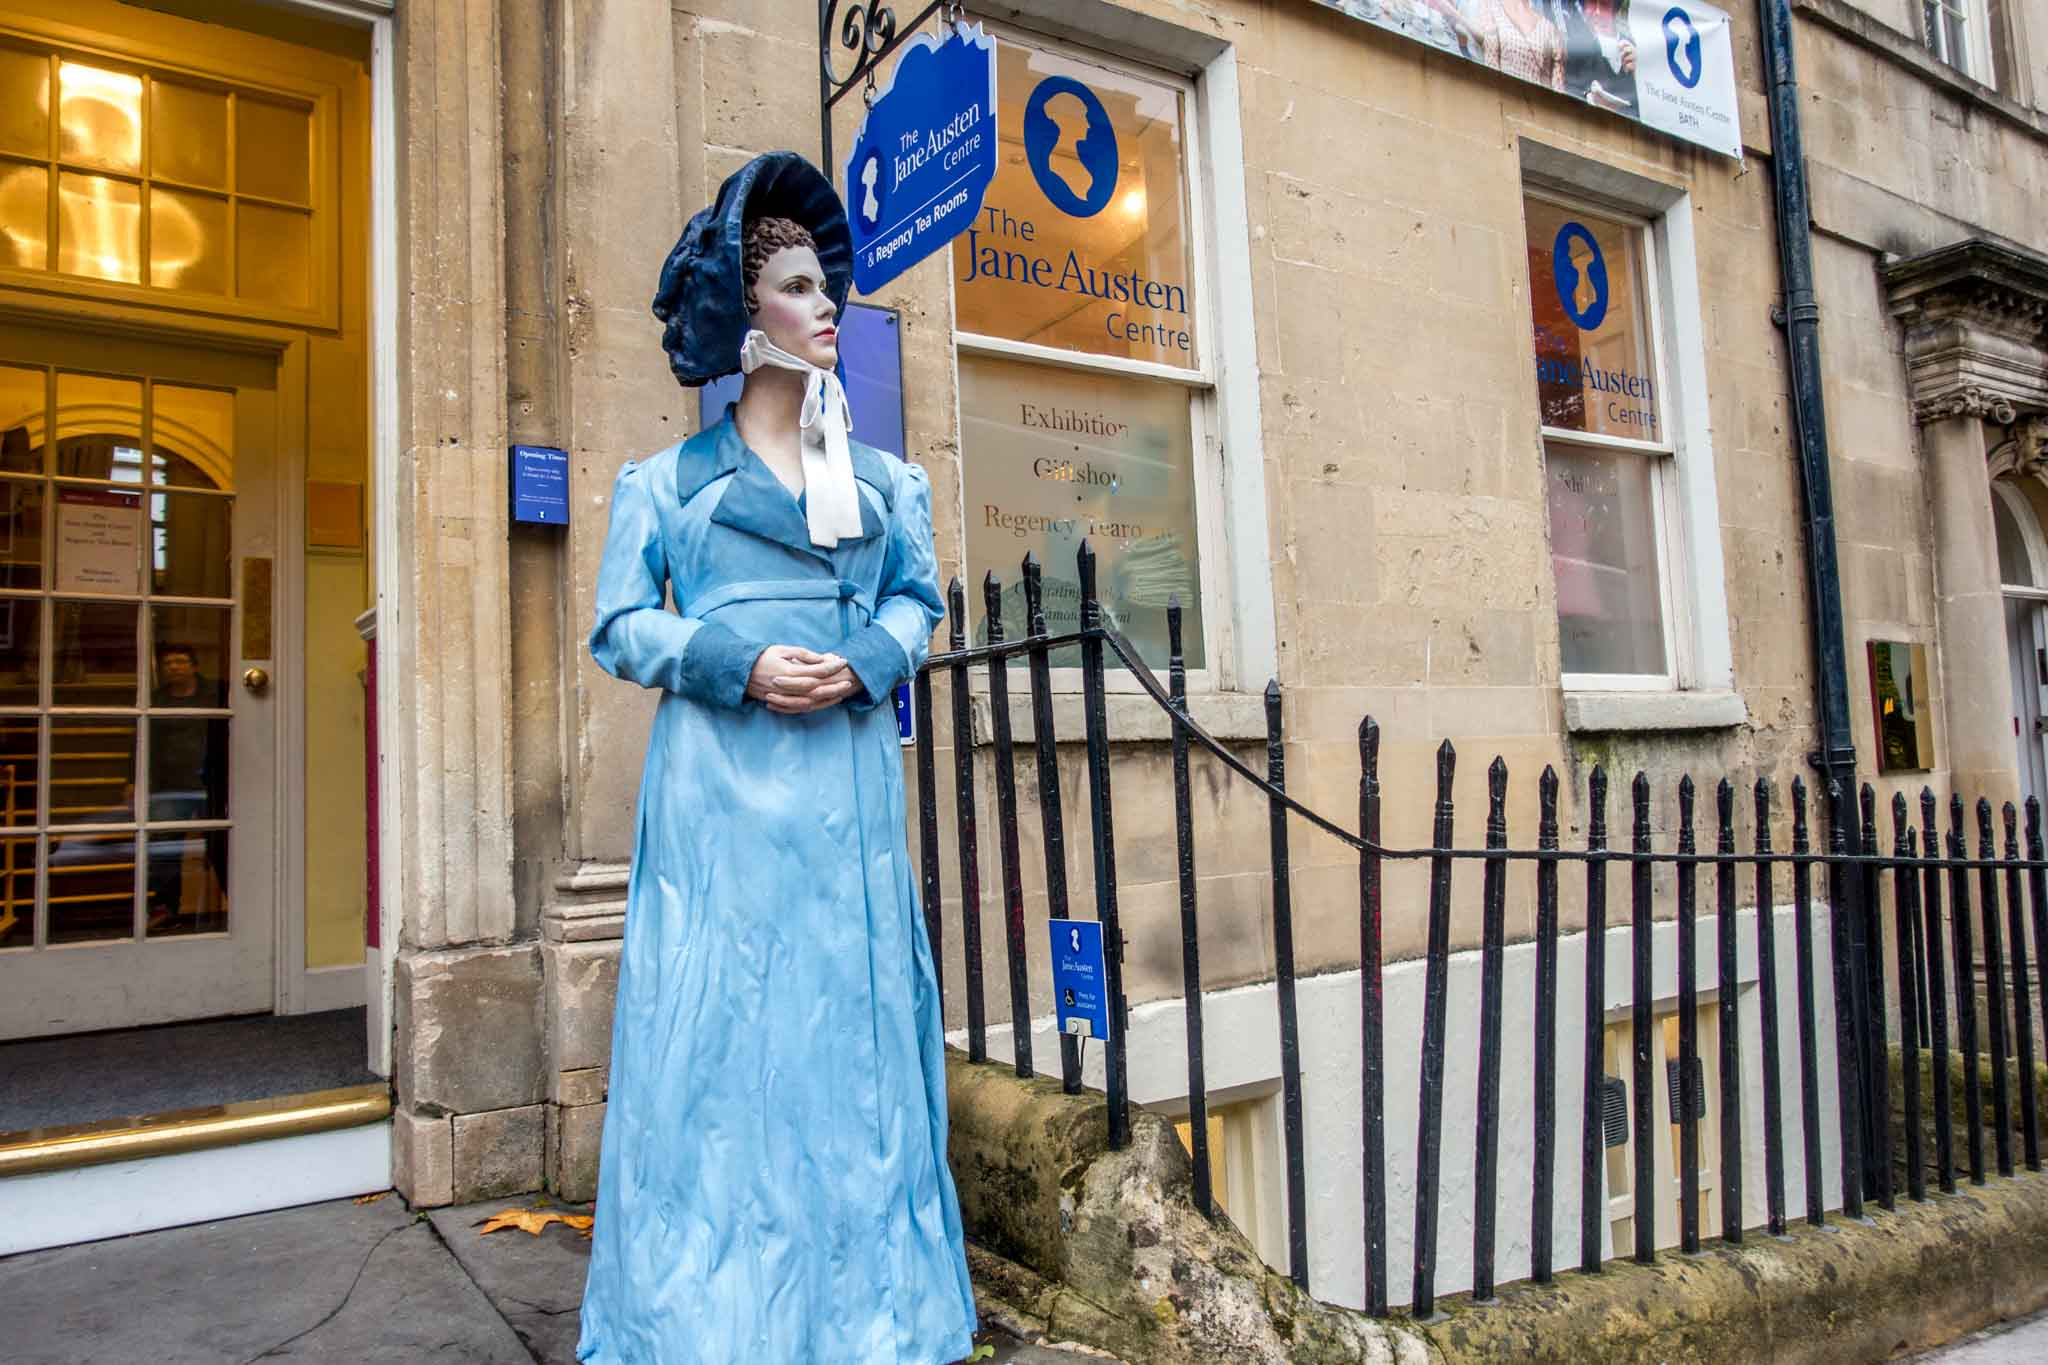 Statue in front of the Jane Austen Center, one of the top places to see in Bath UK